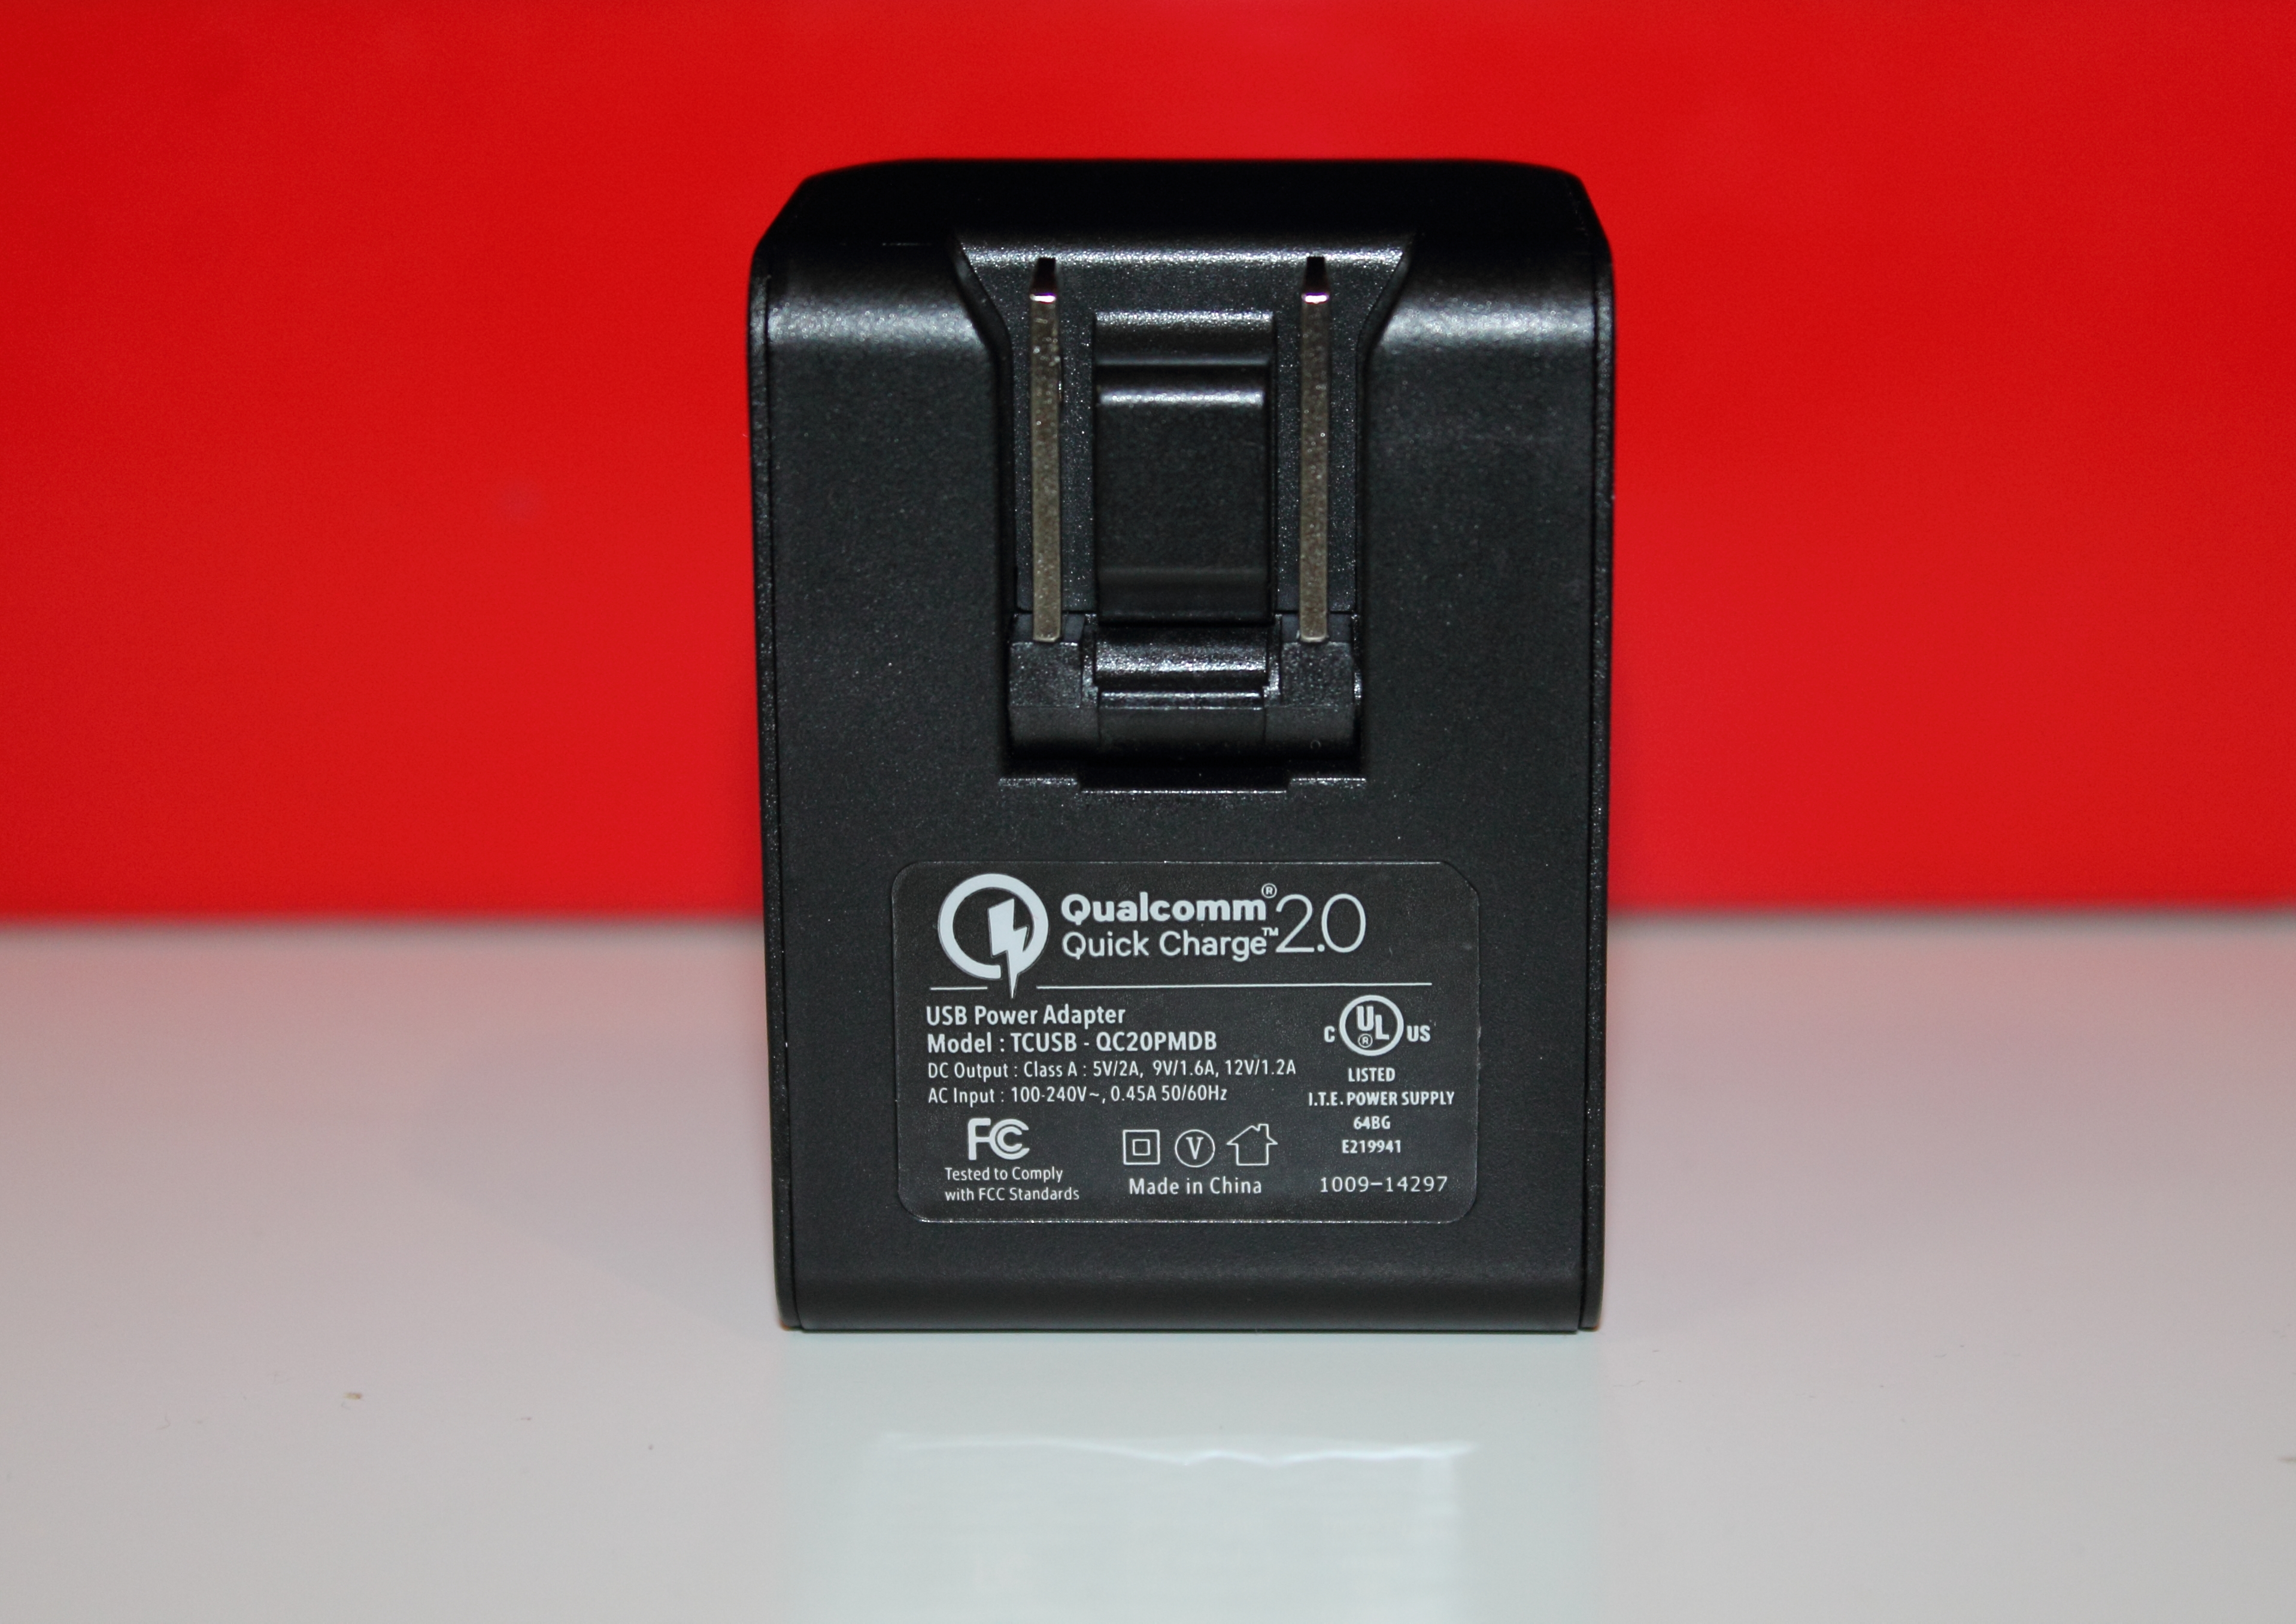 Qualcomm Quick Charge 2